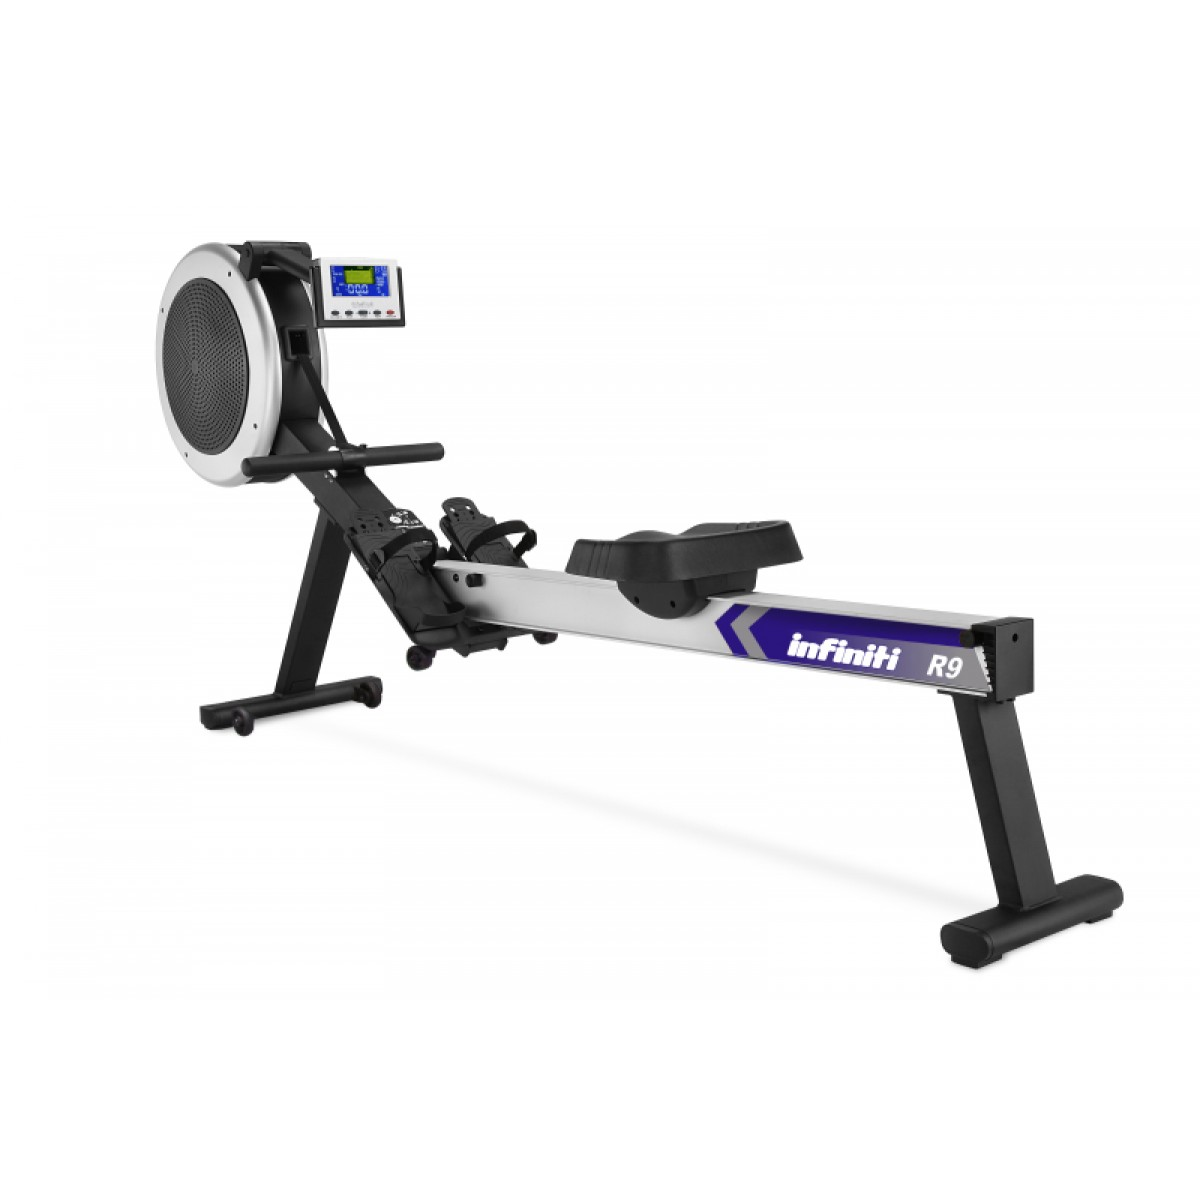 INFINITI R9i LIGHT COMMERCIAL ROWER $399 3 months HIRE